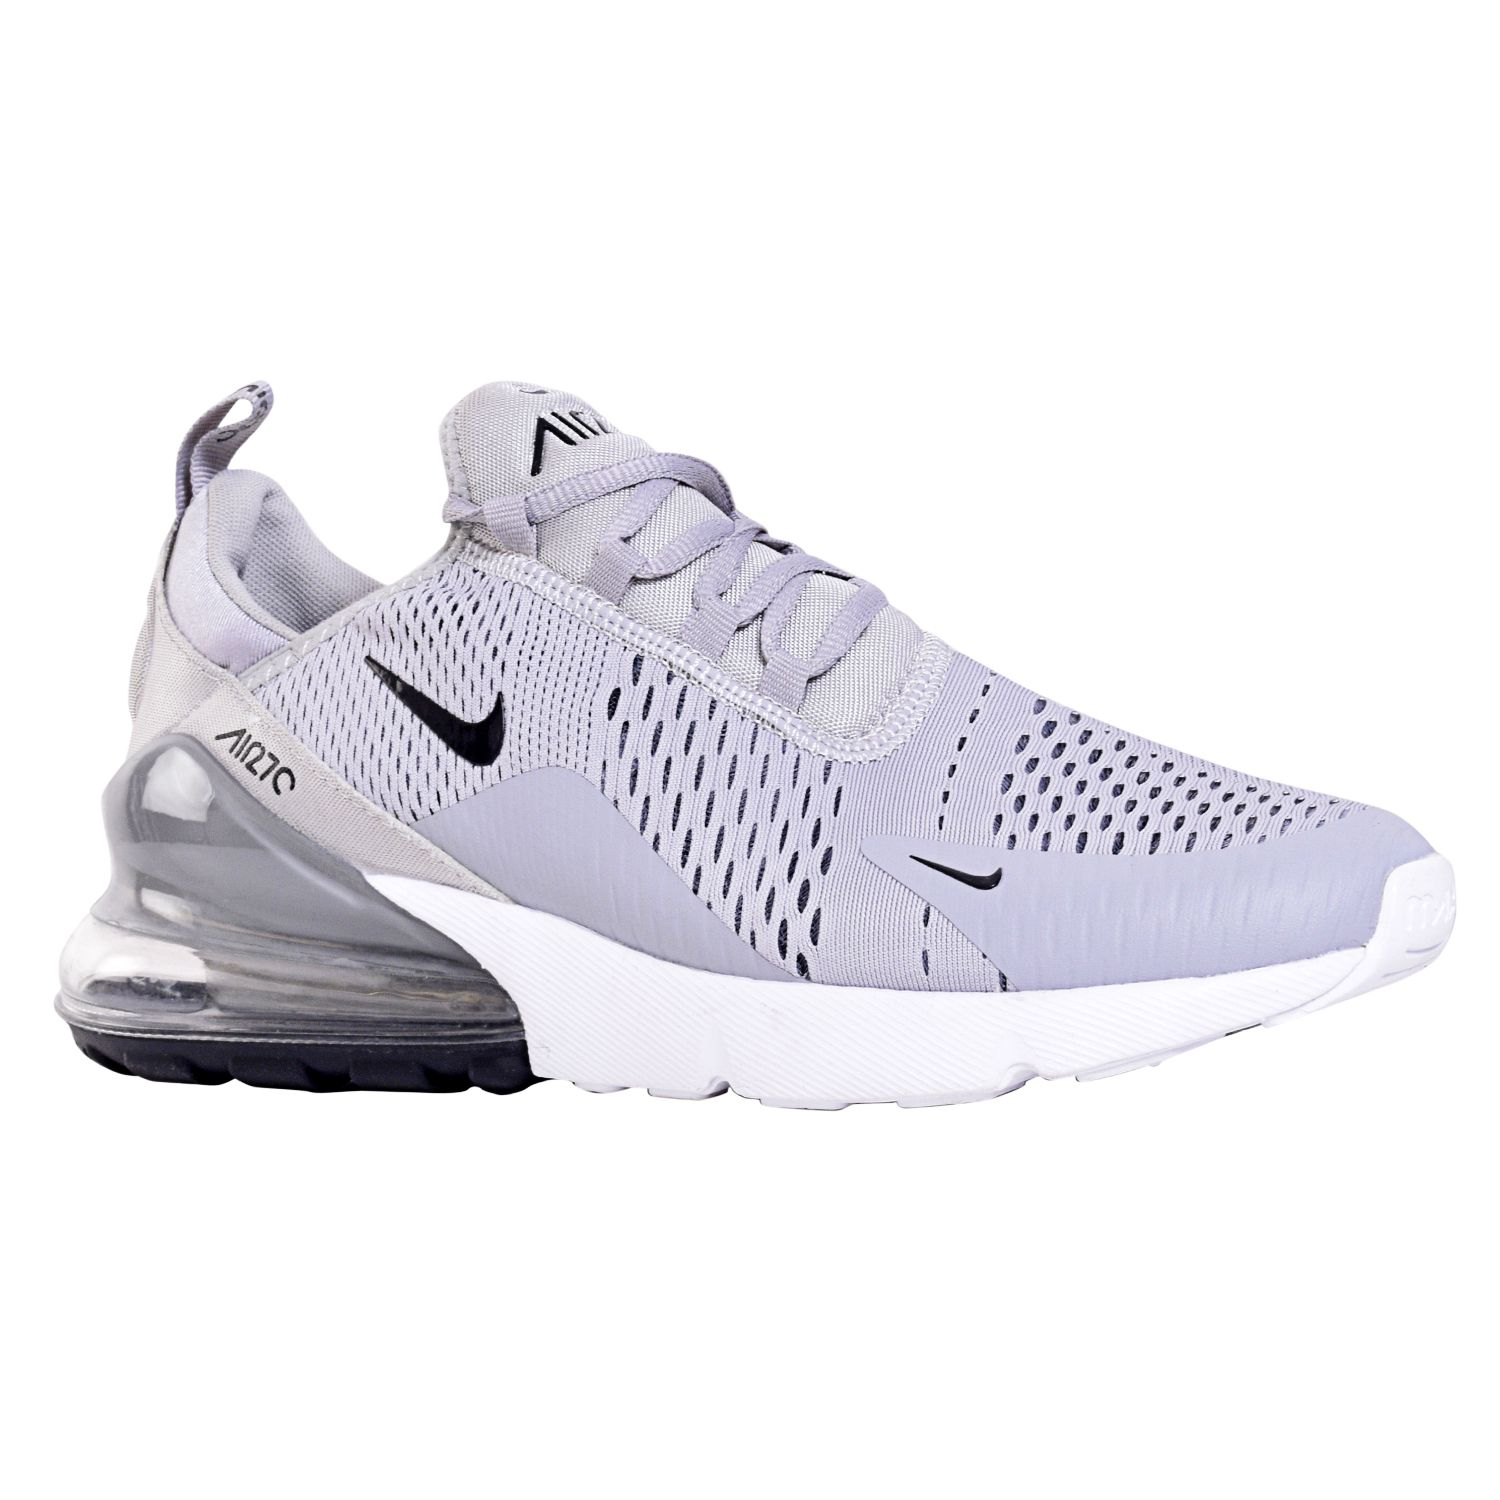 inexpensive air max nike india price 2d43f d5ee9